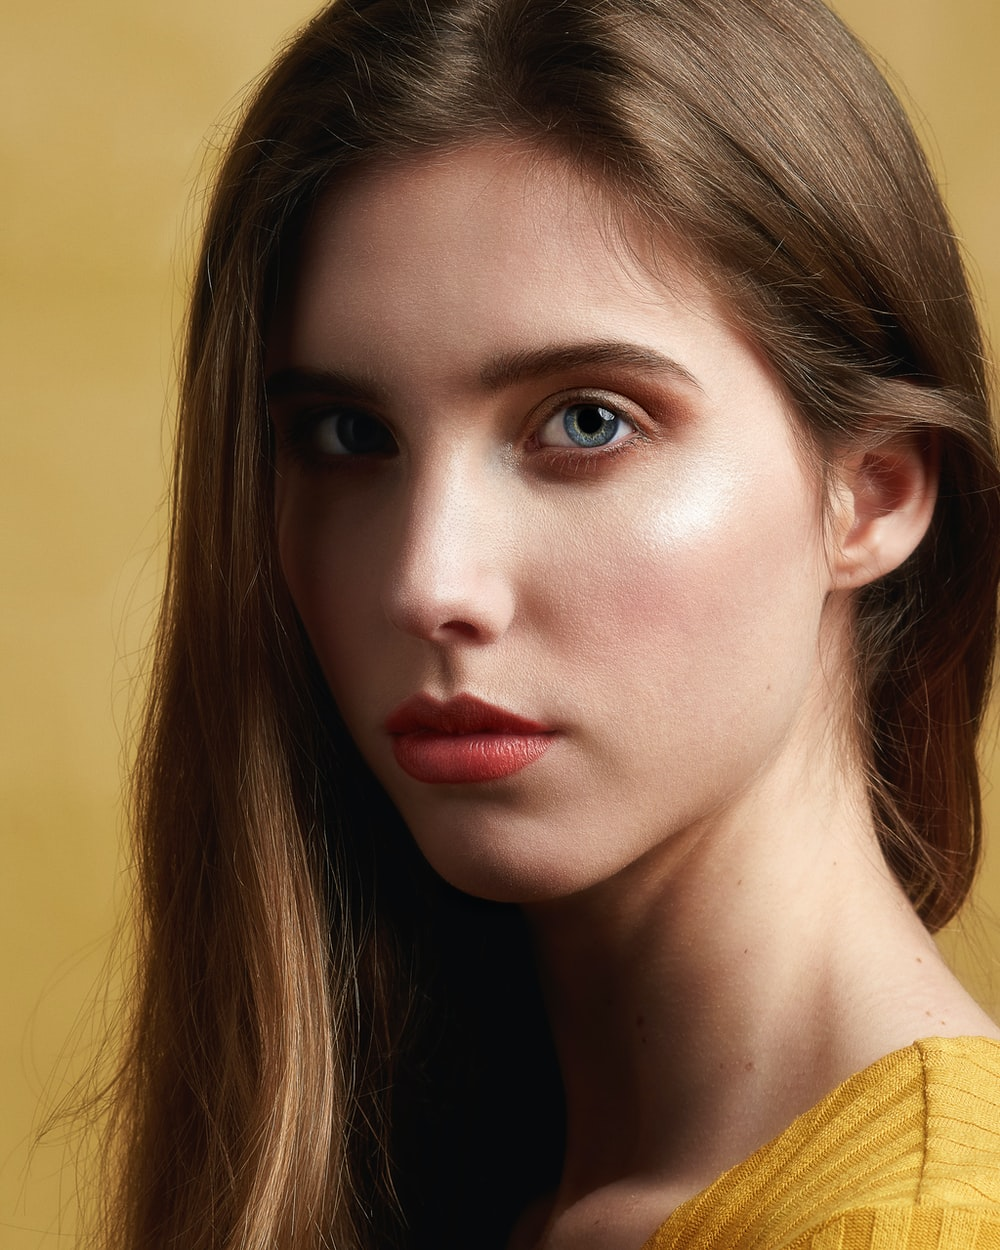 shallow focus photo of woman in yellow top